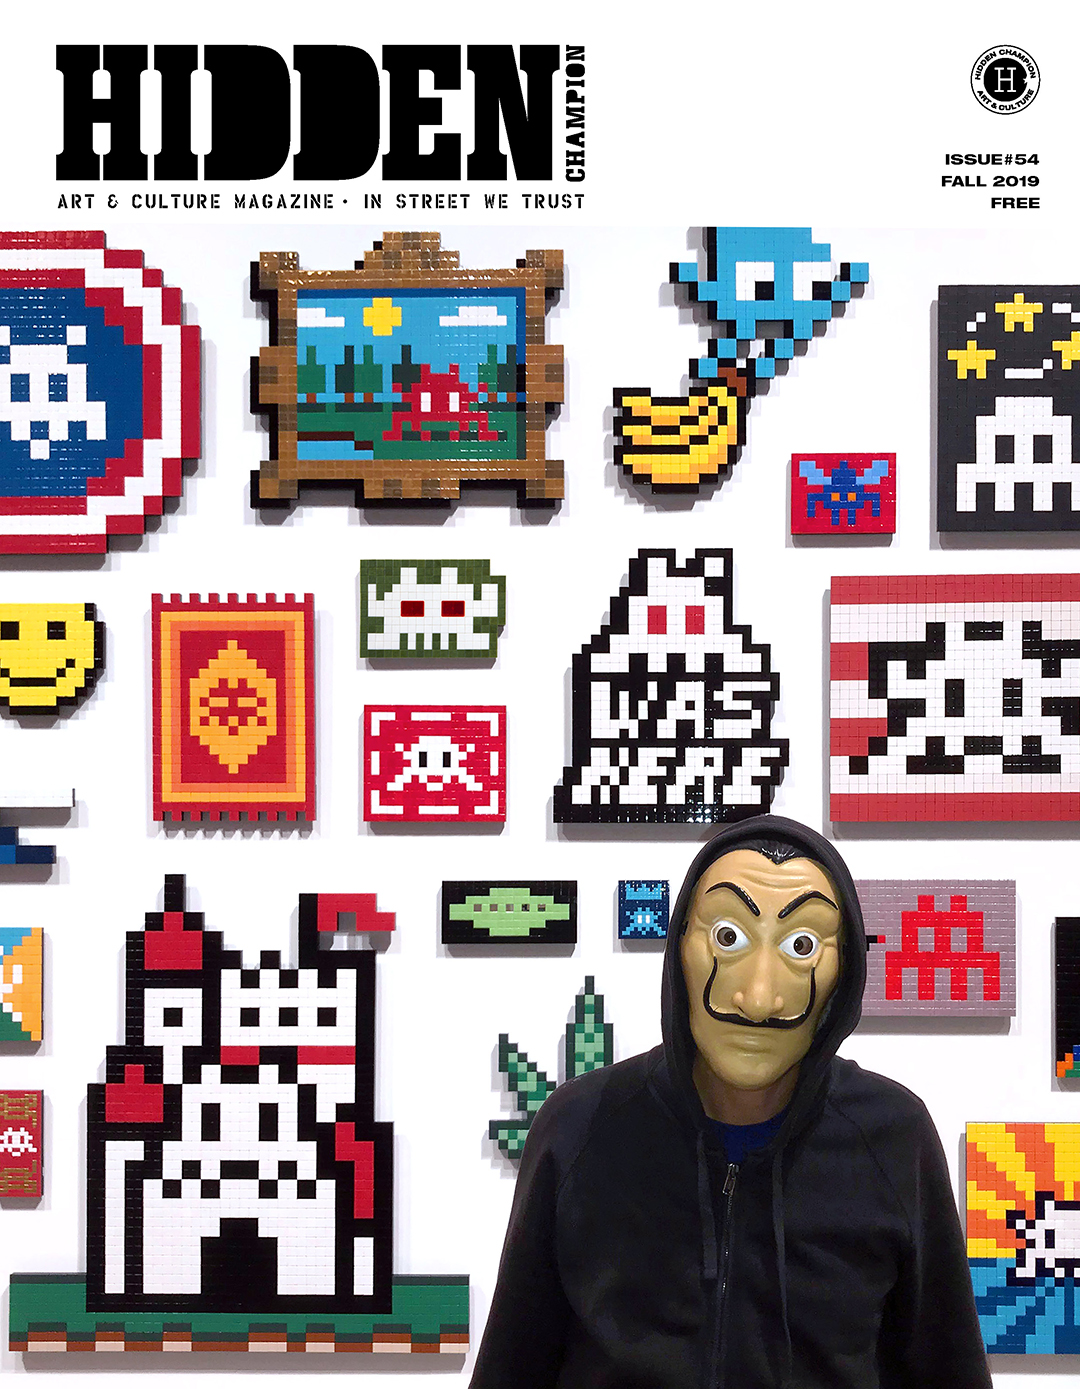 HIDDEN CHAMPION Issue #54 – Fall 2019